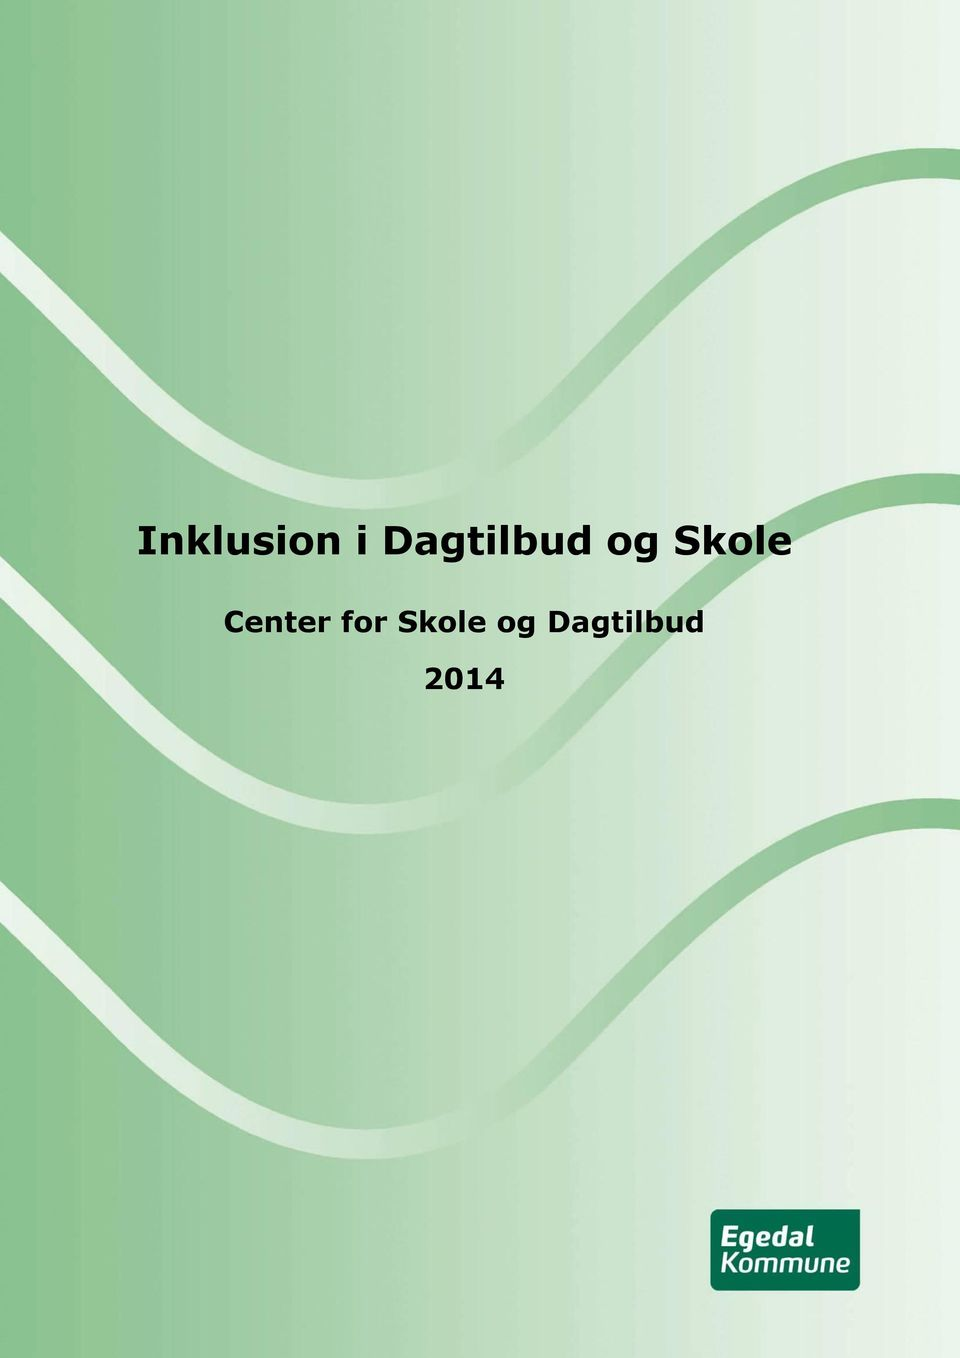 Skole Center for